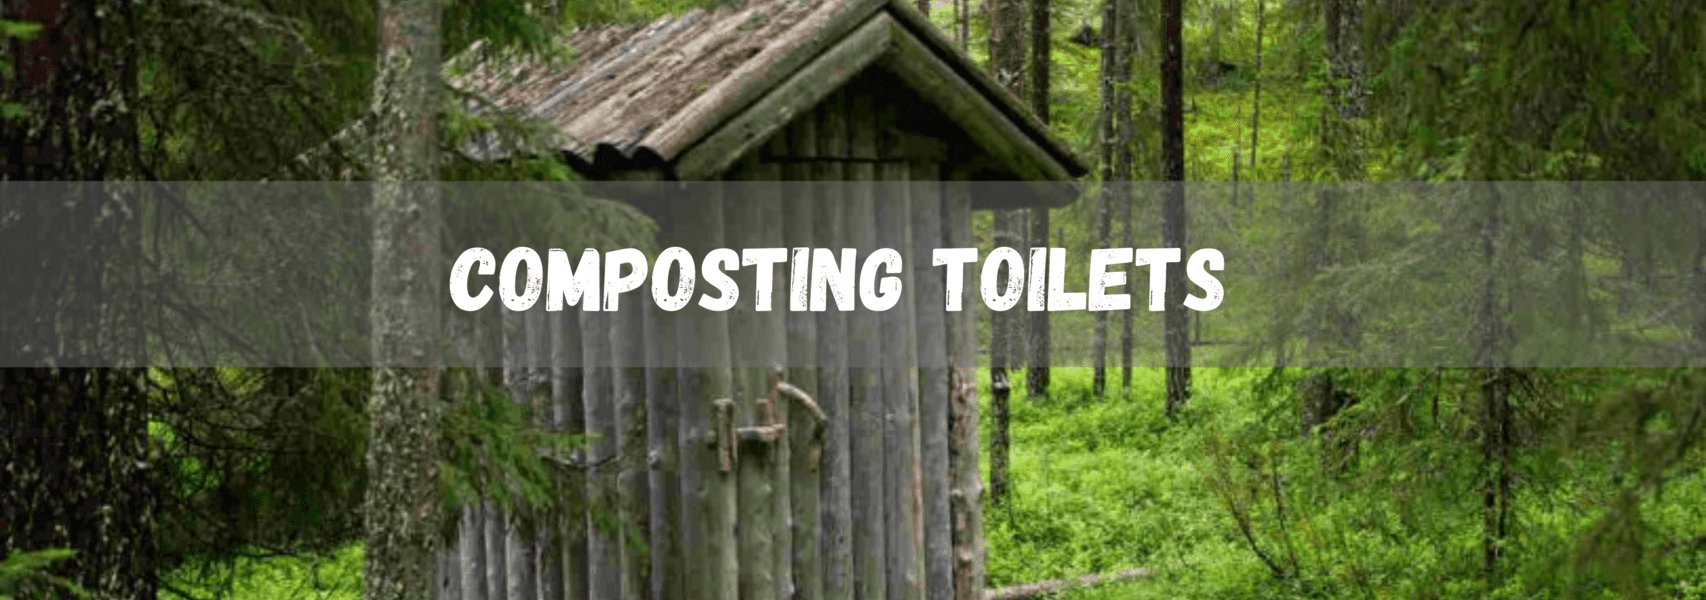 Composting Toilets for Container Homes